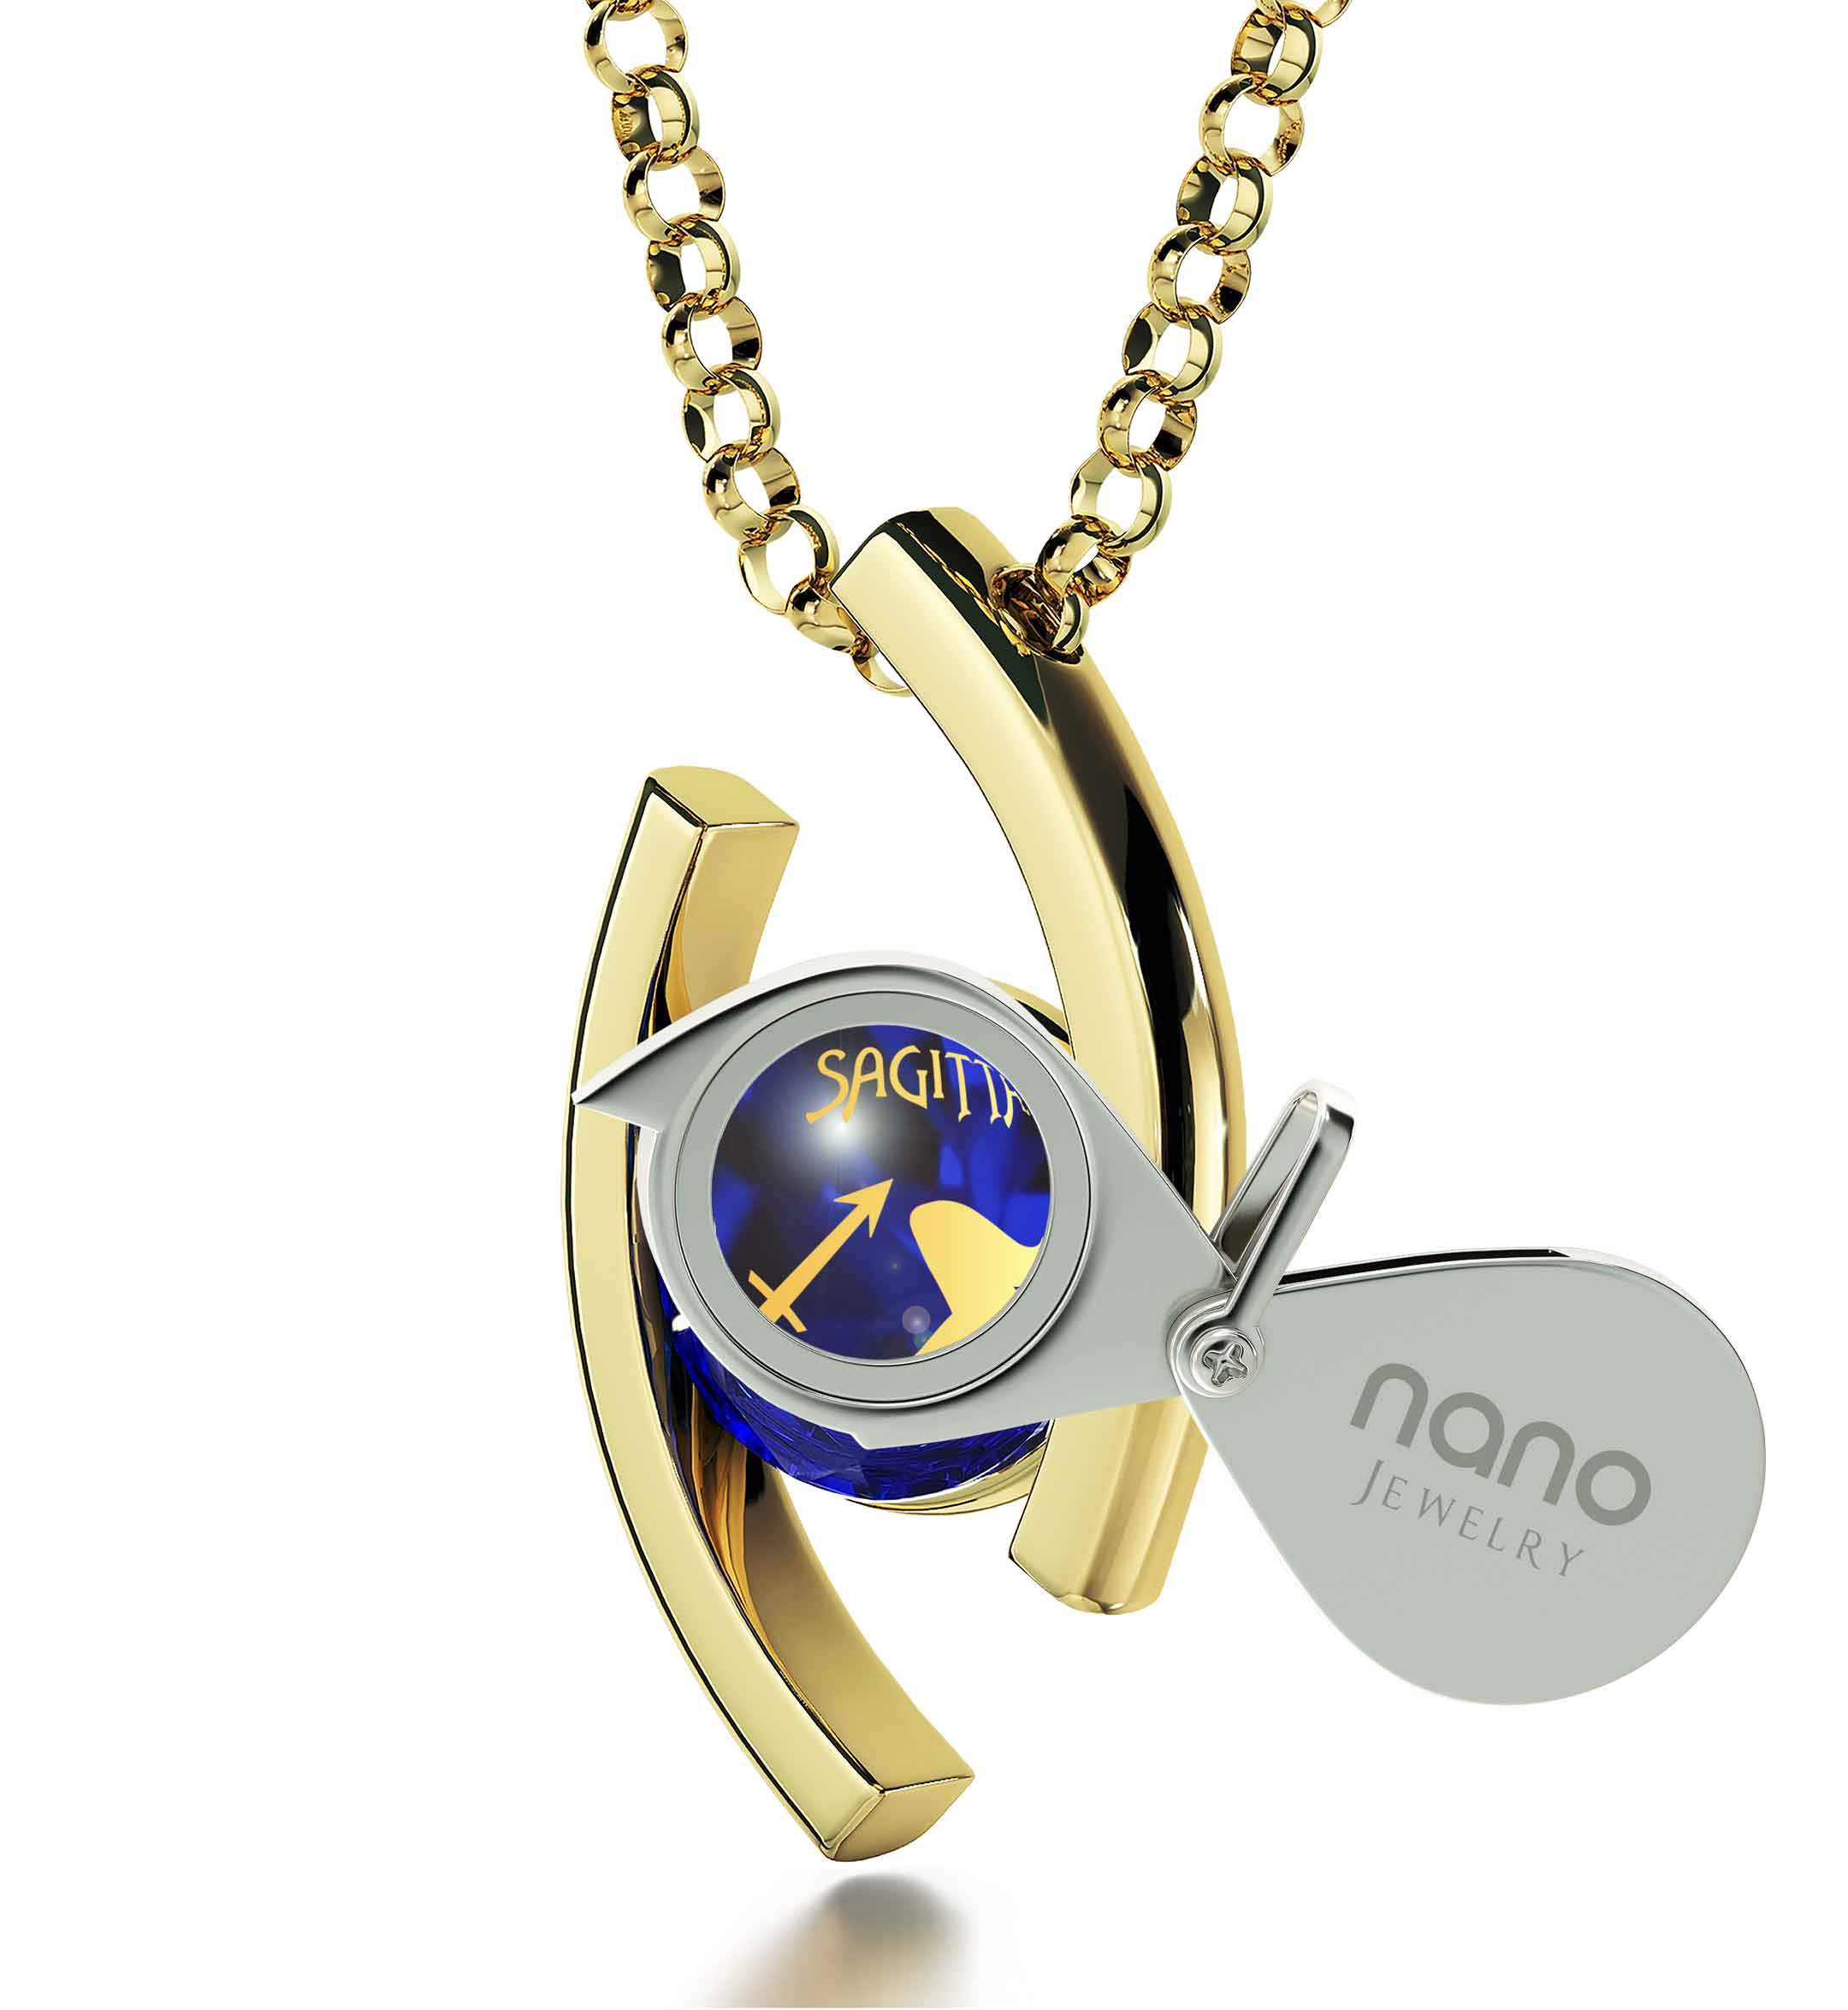 Sagittarius Jewelry With Zodiac Imprint, Mother's Day Gifts From Husband, What to Get Her for Christmas, by Nano